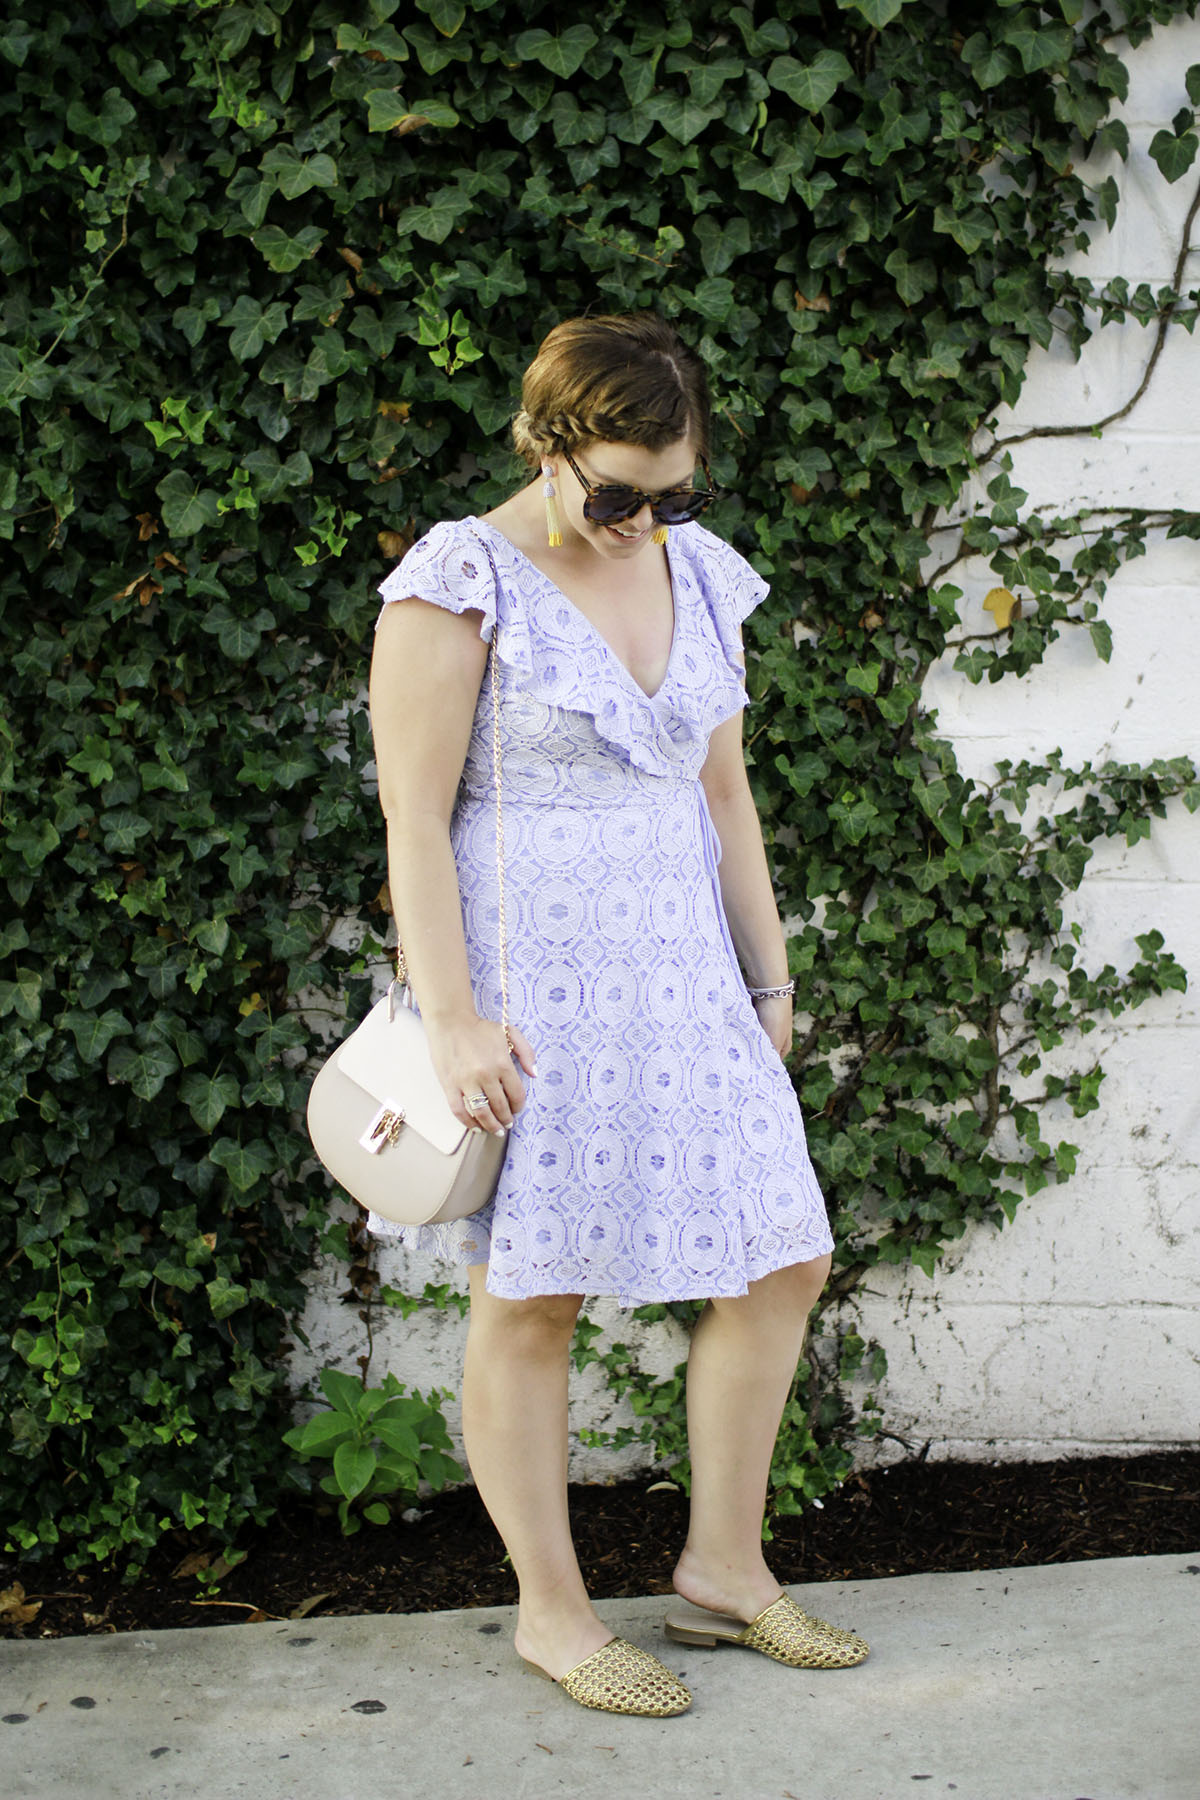 The Glitter Gospel Blog shares the perfect end of summer dress + end of summer outfit ideas. Powder Blue Lace Dress, Wedding Outfit Ideas, Gold Cage Slides, Easy Outfits, Braided Updo, Green Ivy Backdrop, Ocean City MD, Chloe Drew Dupe. When the Little Things Don't Matter. . . How you can help with Harvey by TN fashion blogger The Glitter Gospel